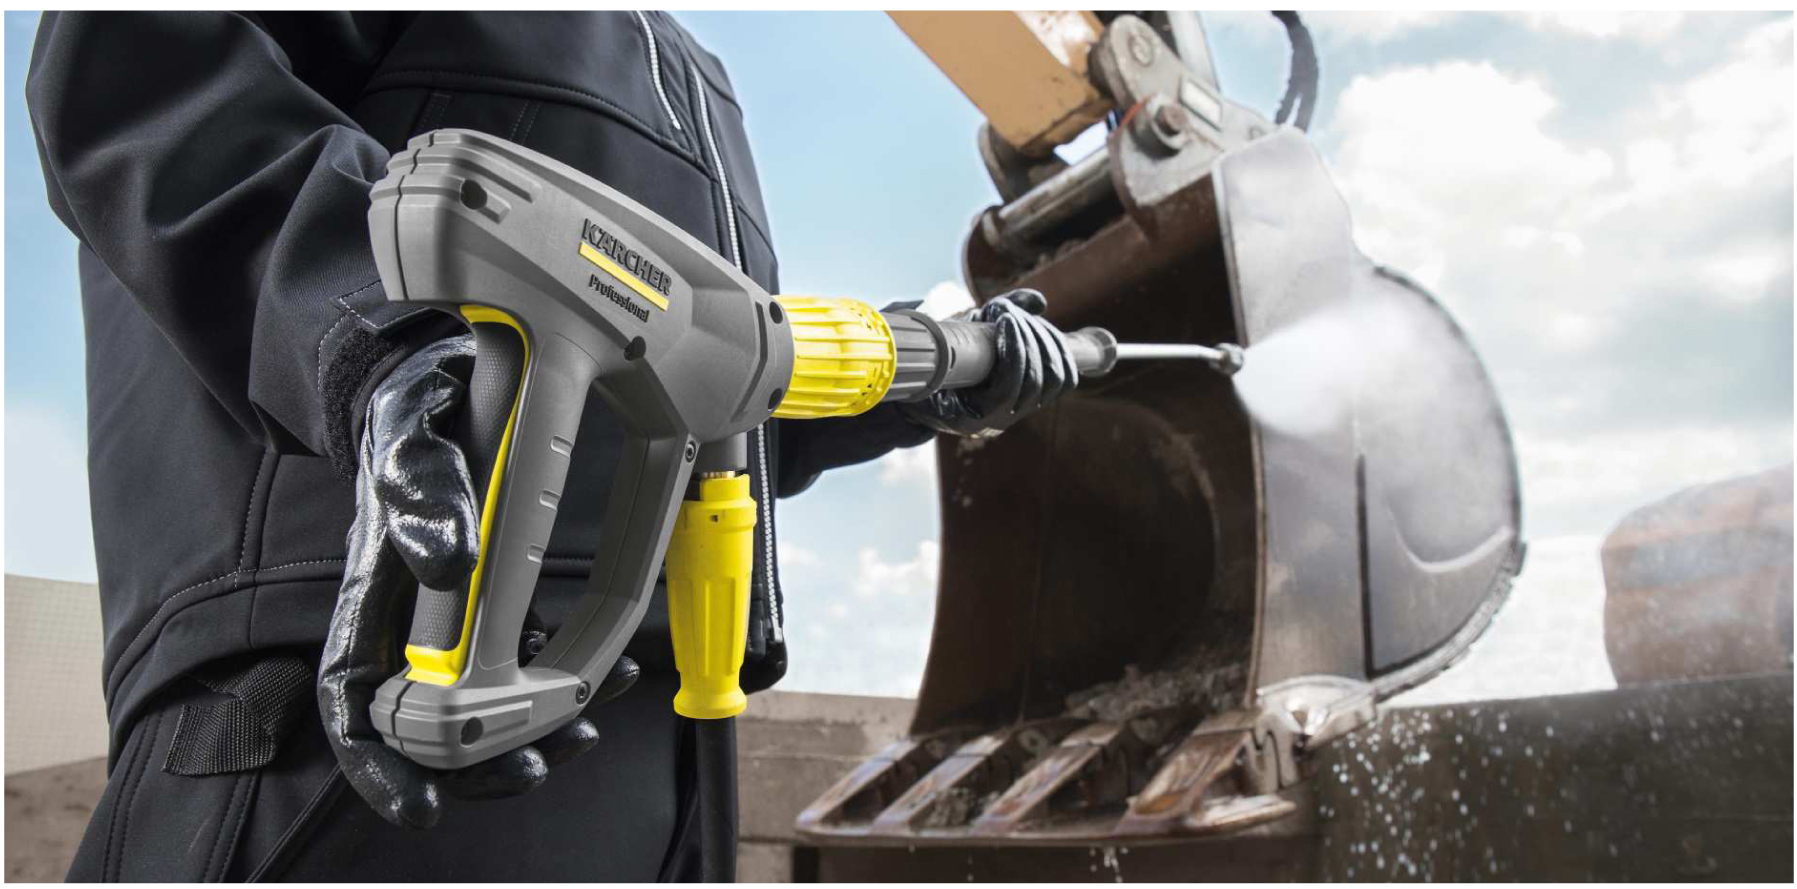 Pistolet Easy!Force Karcher